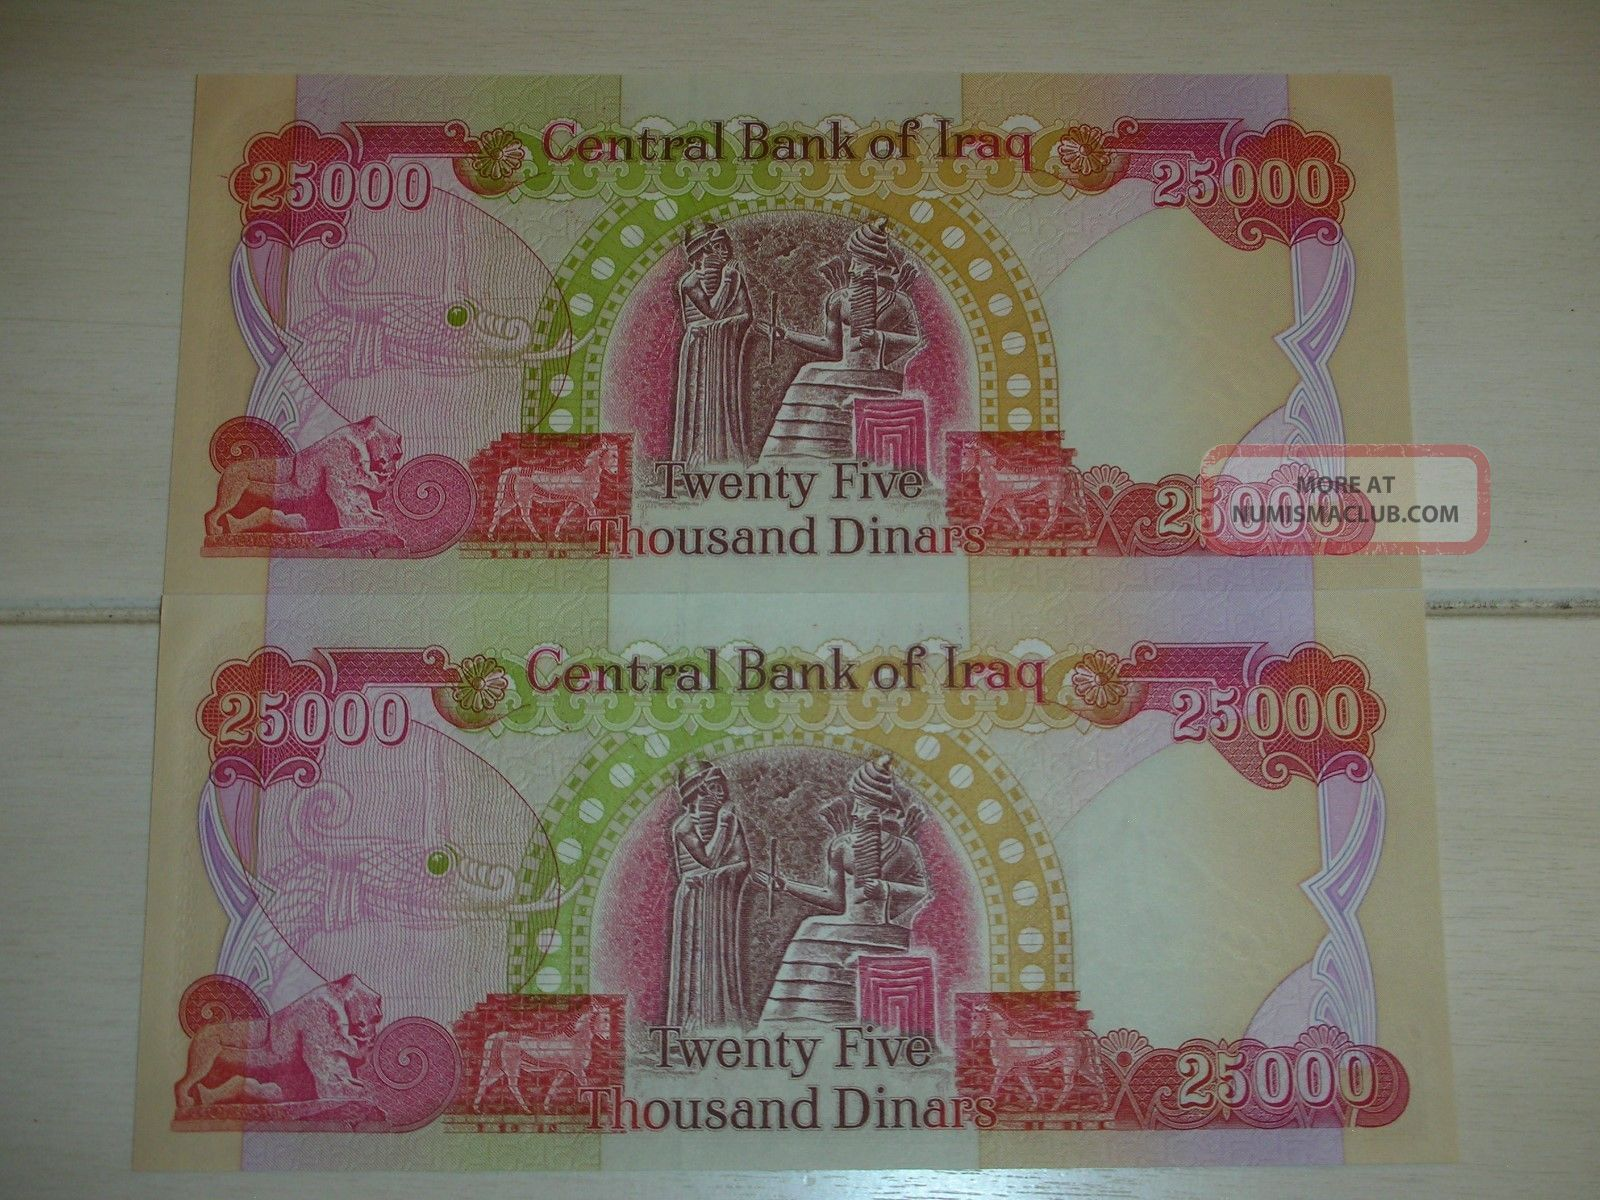 UNCIRCULATED 1 X 50 NEW IRAQI DINAR FOR COLLECTION